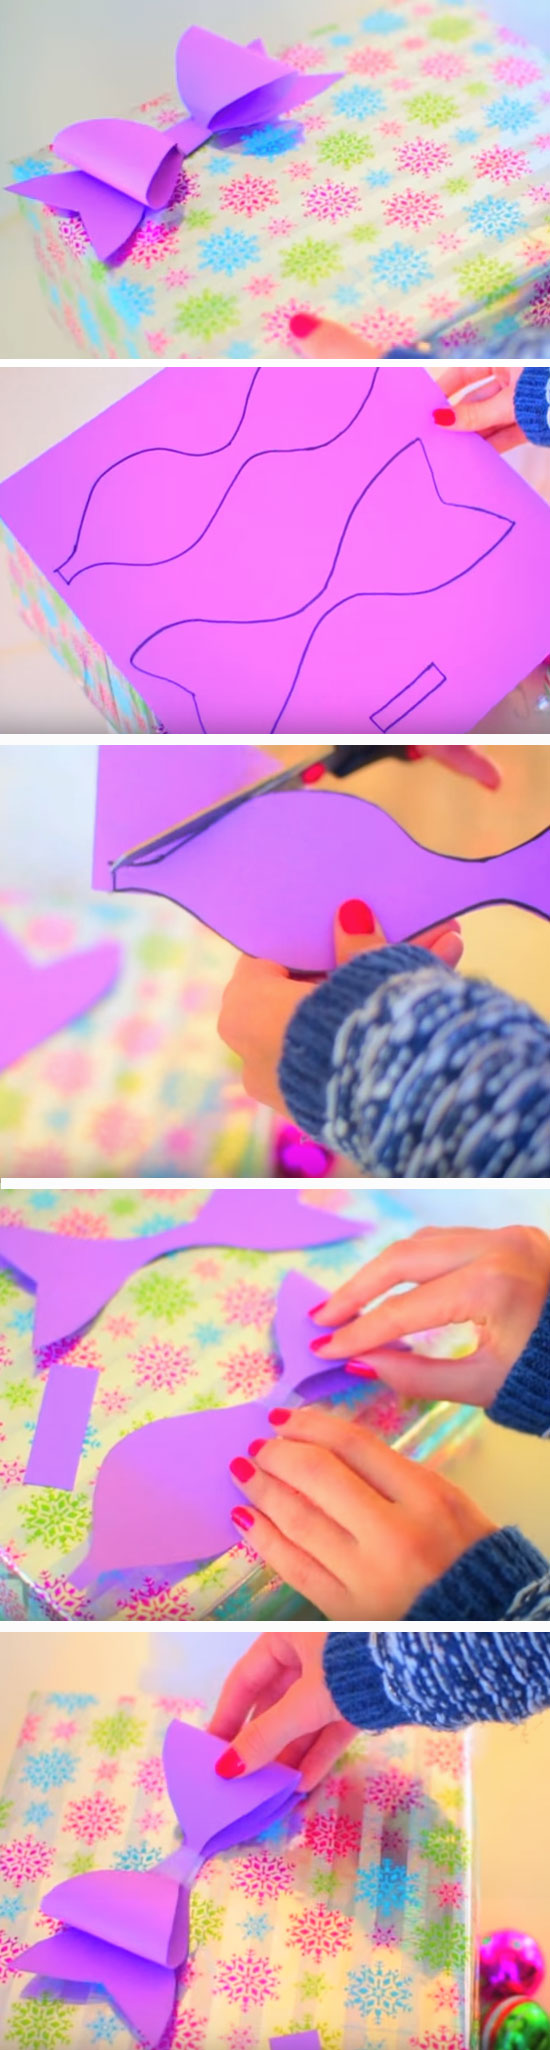 28 DIY Christmas Decorating Ideas and Tutorials